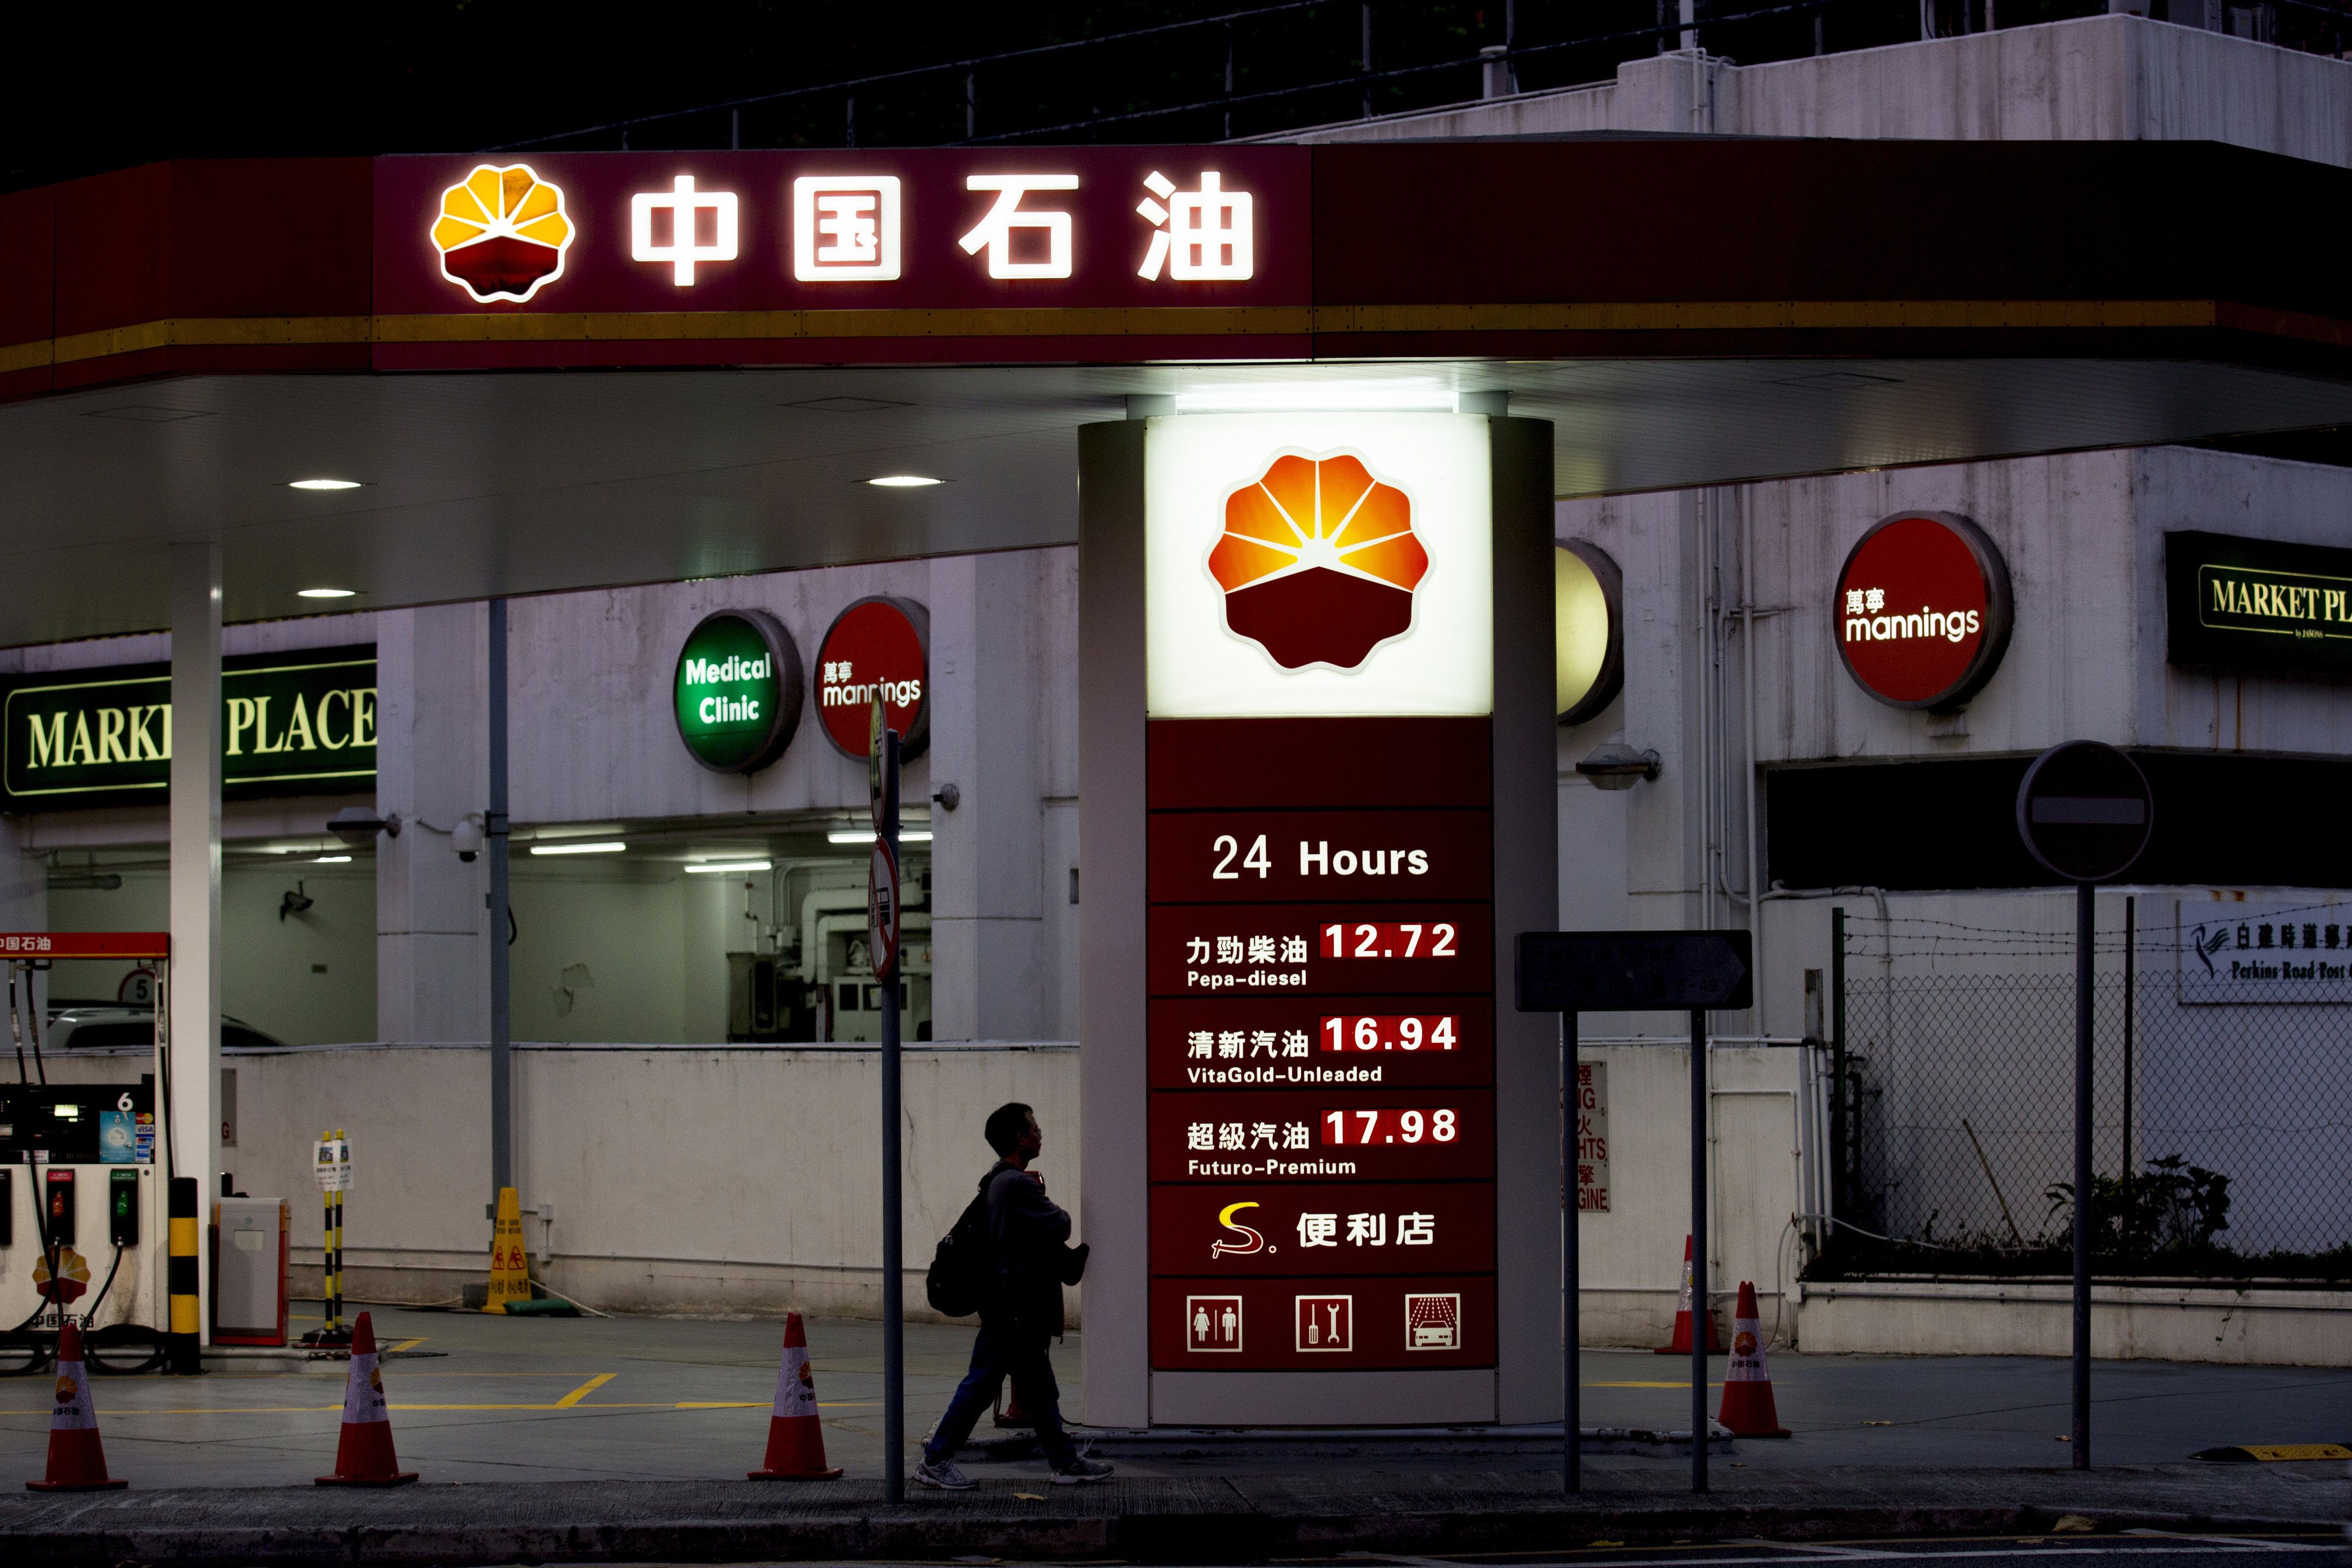 Images Of PetroChina Co. Gas Stations Ahead Of Earnings